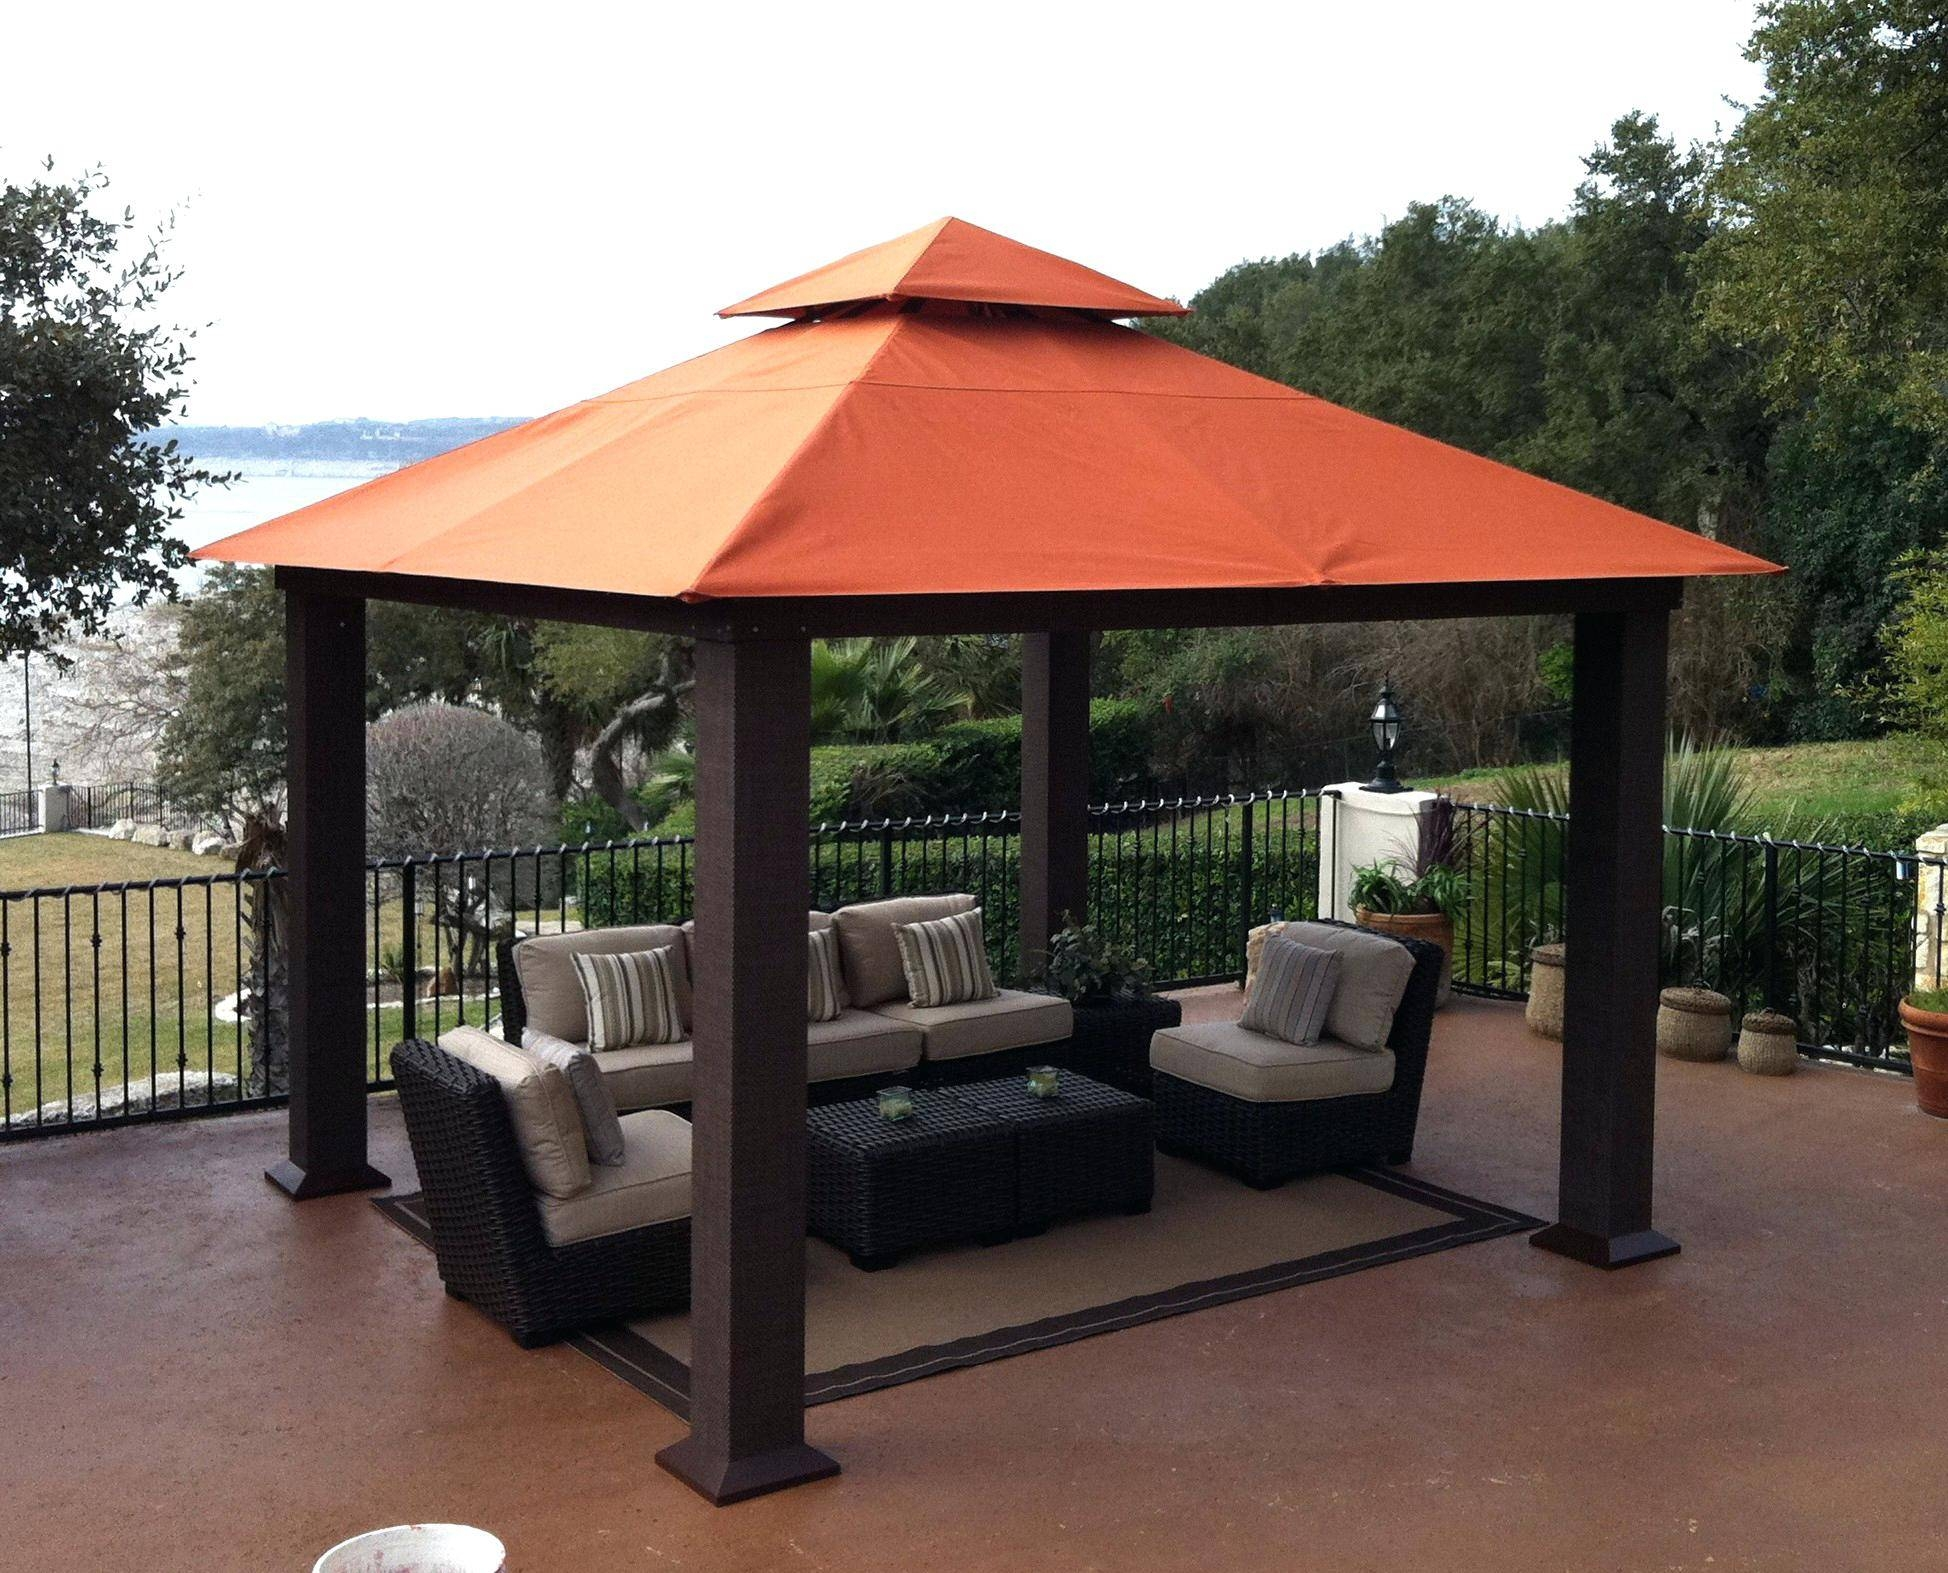 Outdoor Furniture Canopy – Creativealternatives.co for Outdoor Sofas With Canopy (Image 18 of 30)